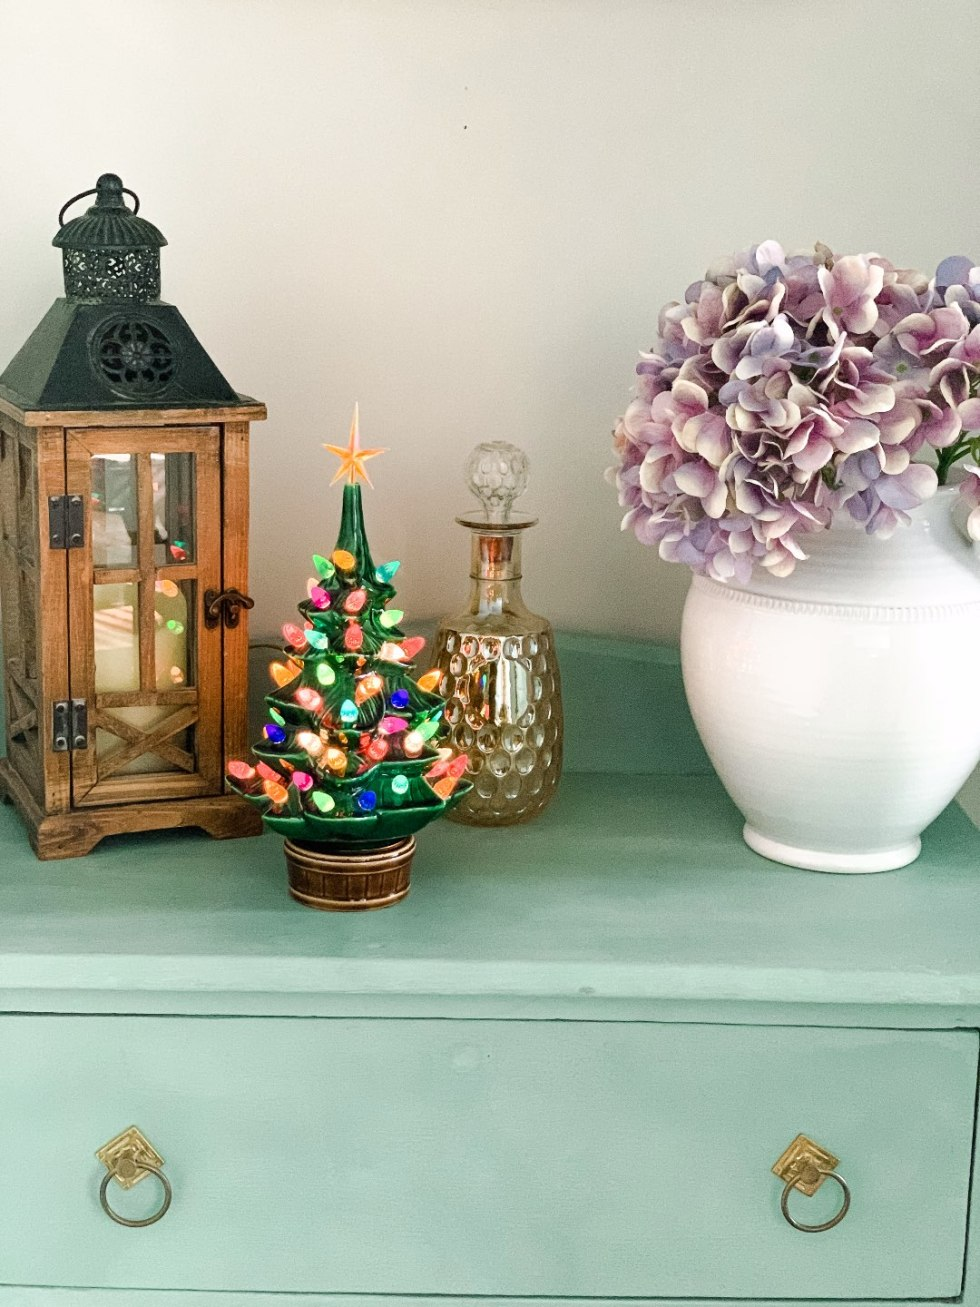 Holiday Home Decor Tour - I'm Fixin' To - @mbg0112 | Holiday Home Decor Tour by popular North Carolina life and style blog, I'm Fixin' To: image of a dresser with a glass light up Christmas tree on it.